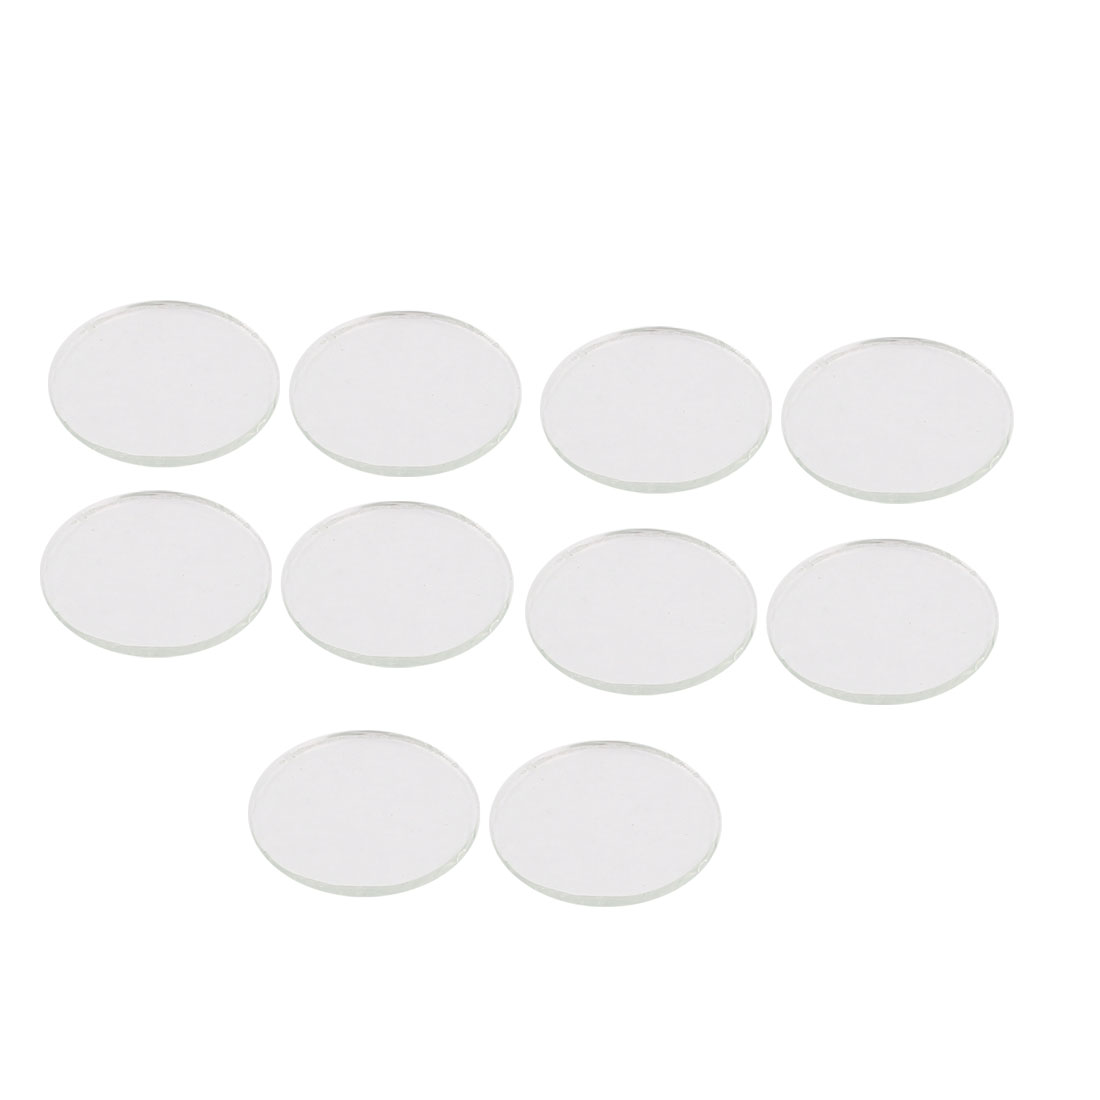 10 Pcs 20mm Diameter 1.4mm Thickness Plastic Glass Lens for S5 LED Flashlight